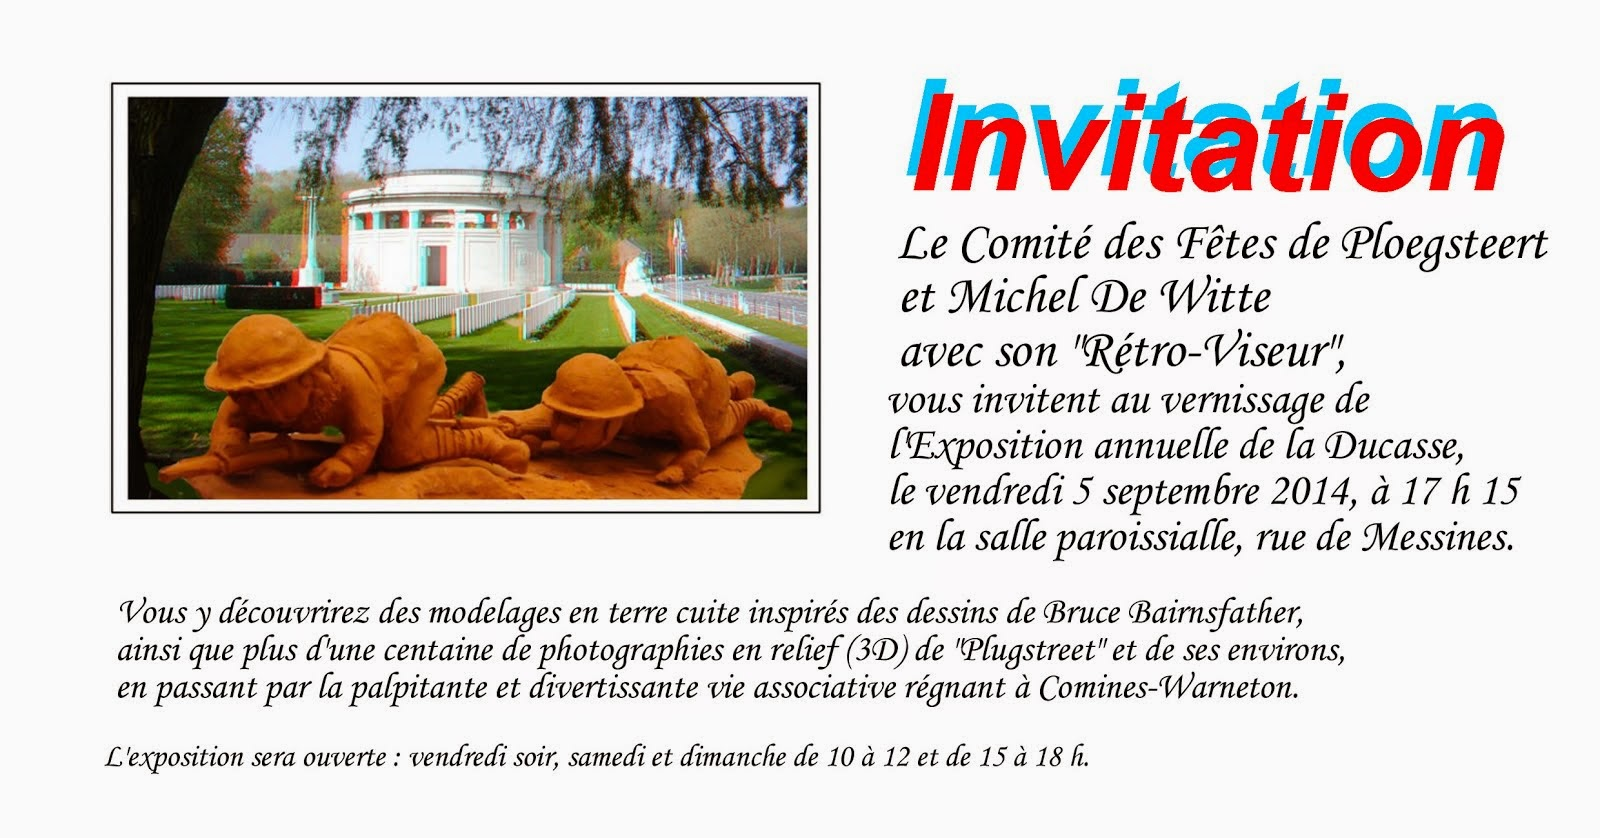 5 SEPTEMBRE VERNISSAGE DE L'EXPOSITION DE MICHEL DE WITTE.